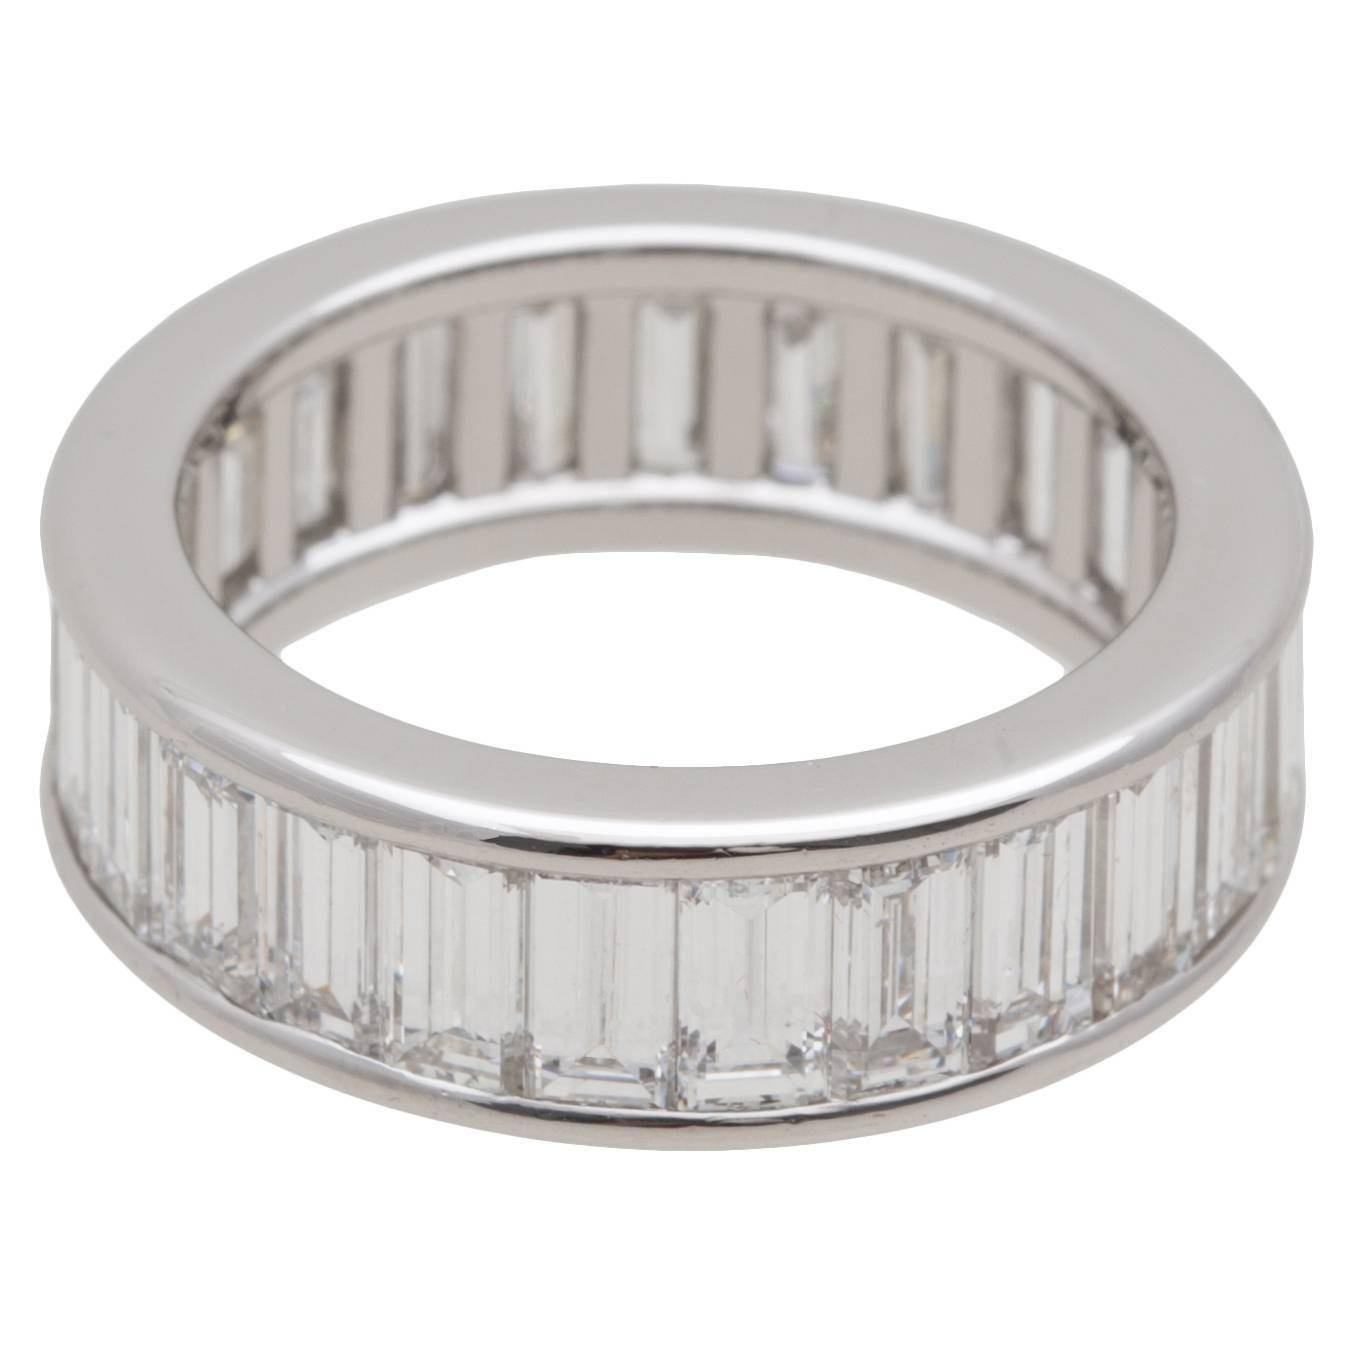 Photo gallery of cartier wedding bands viewing 3 of 15 photos cartier diamond baguette platinum eternity wedding ring for sale within cartier wedding bands gallery 3 junglespirit Choice Image